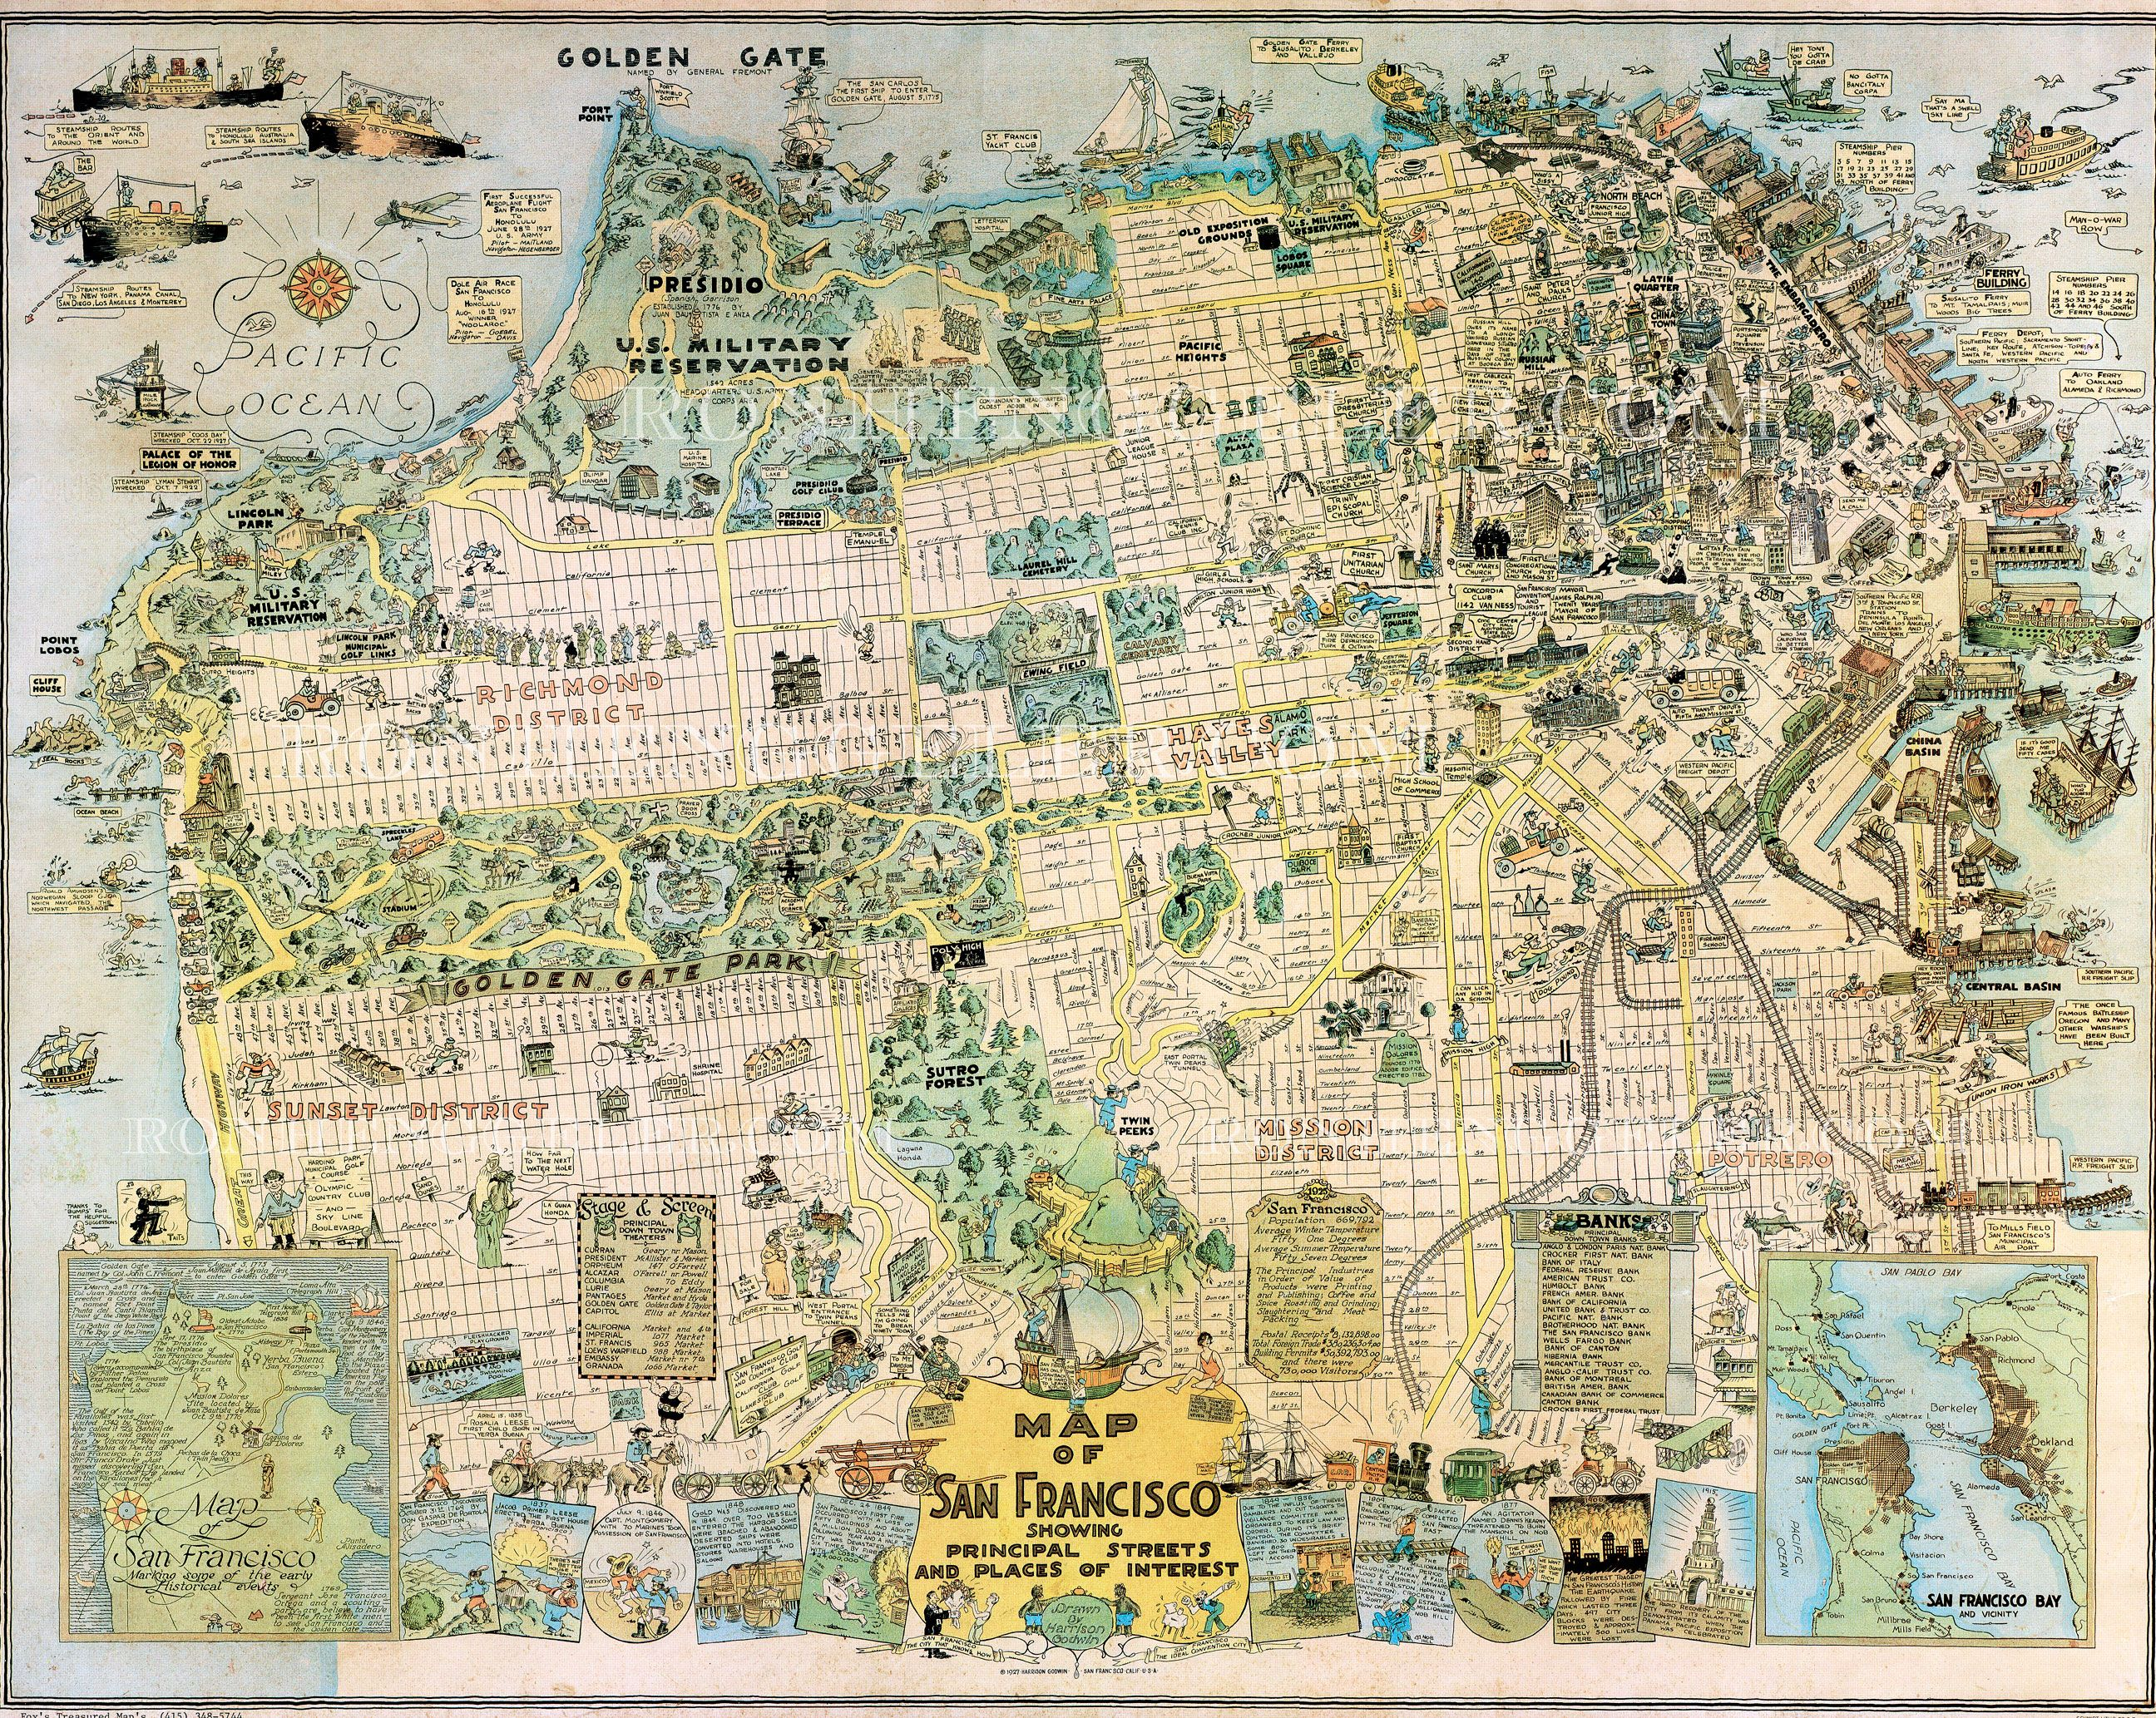 1927 Harrison Godwin map of San Francisco